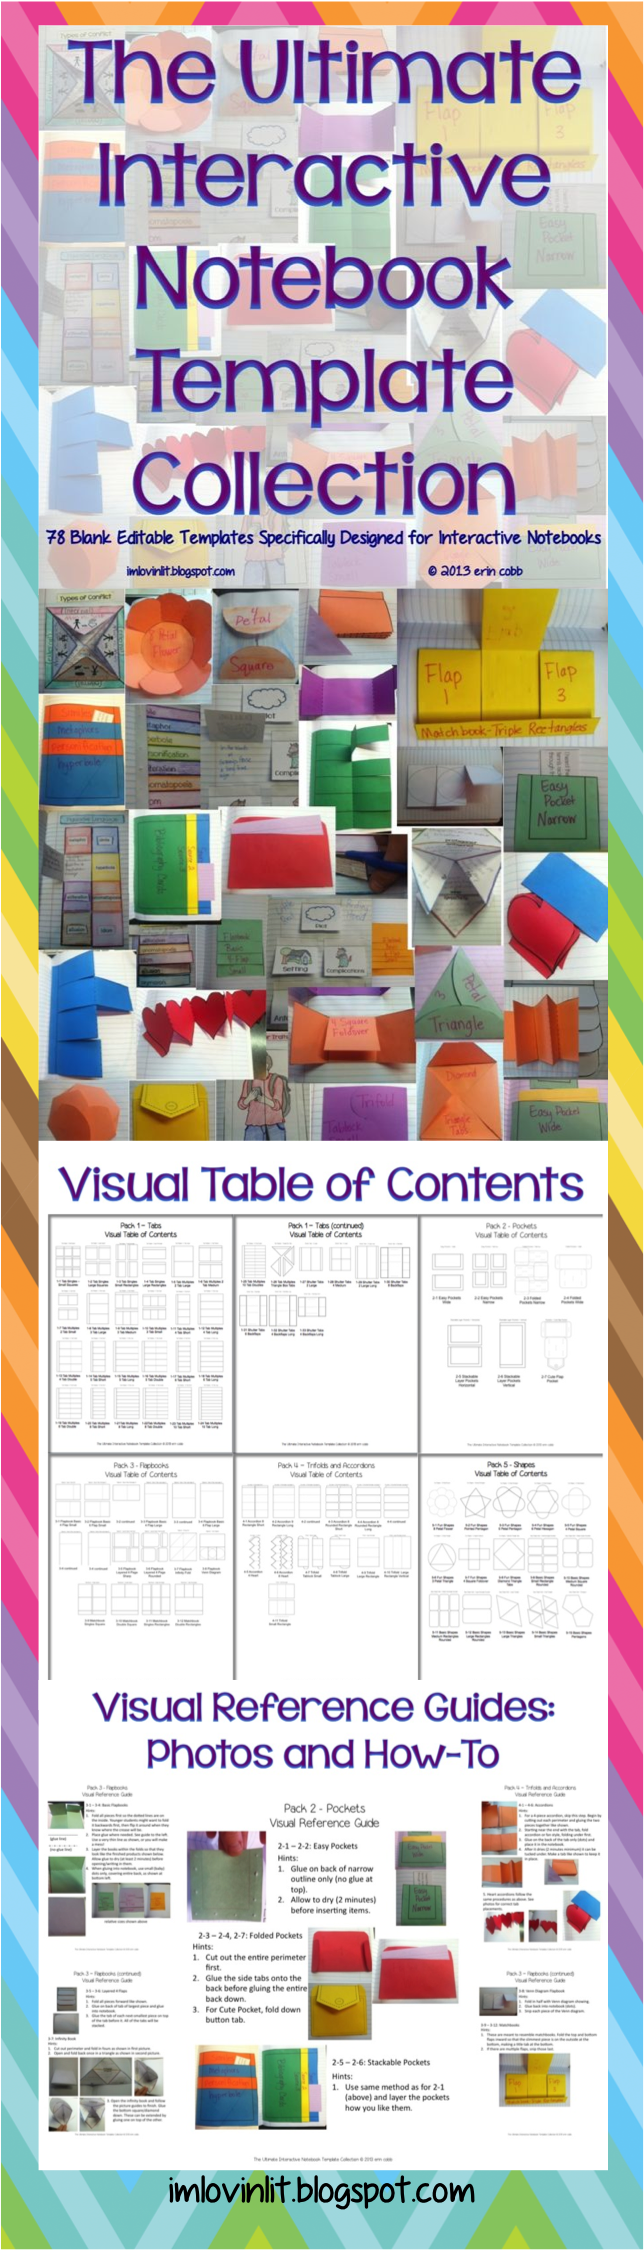 Bring Ideas to Life Through Rich Interactive PDFs